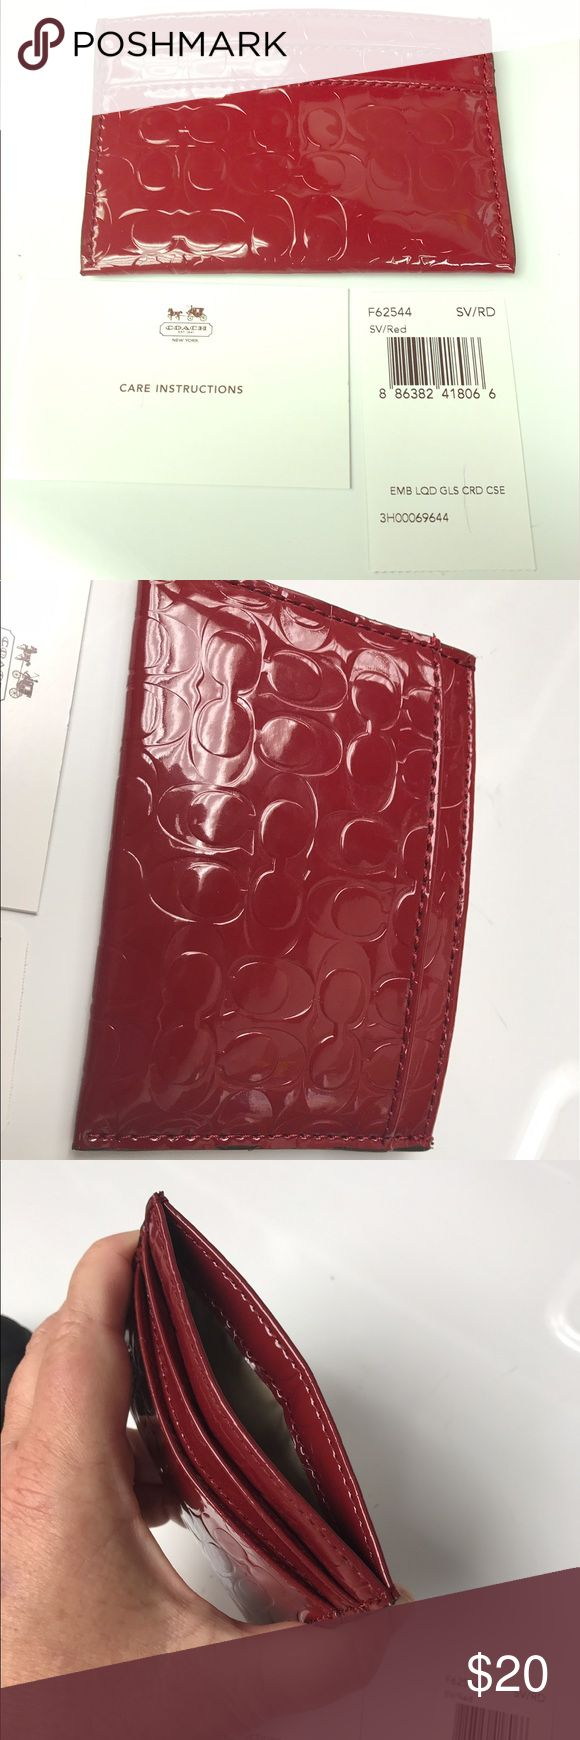 """NWT Coach F62544 red liquid gloss credit card case NWT AUTHENTIC Coach F62544 SV/RD embossed """"c"""" burgundy red liquid gloss credit card case. Two pockets on one side, one on the other. Beautiful! Never used. Smoke free home. Coach Bags Wallets"""